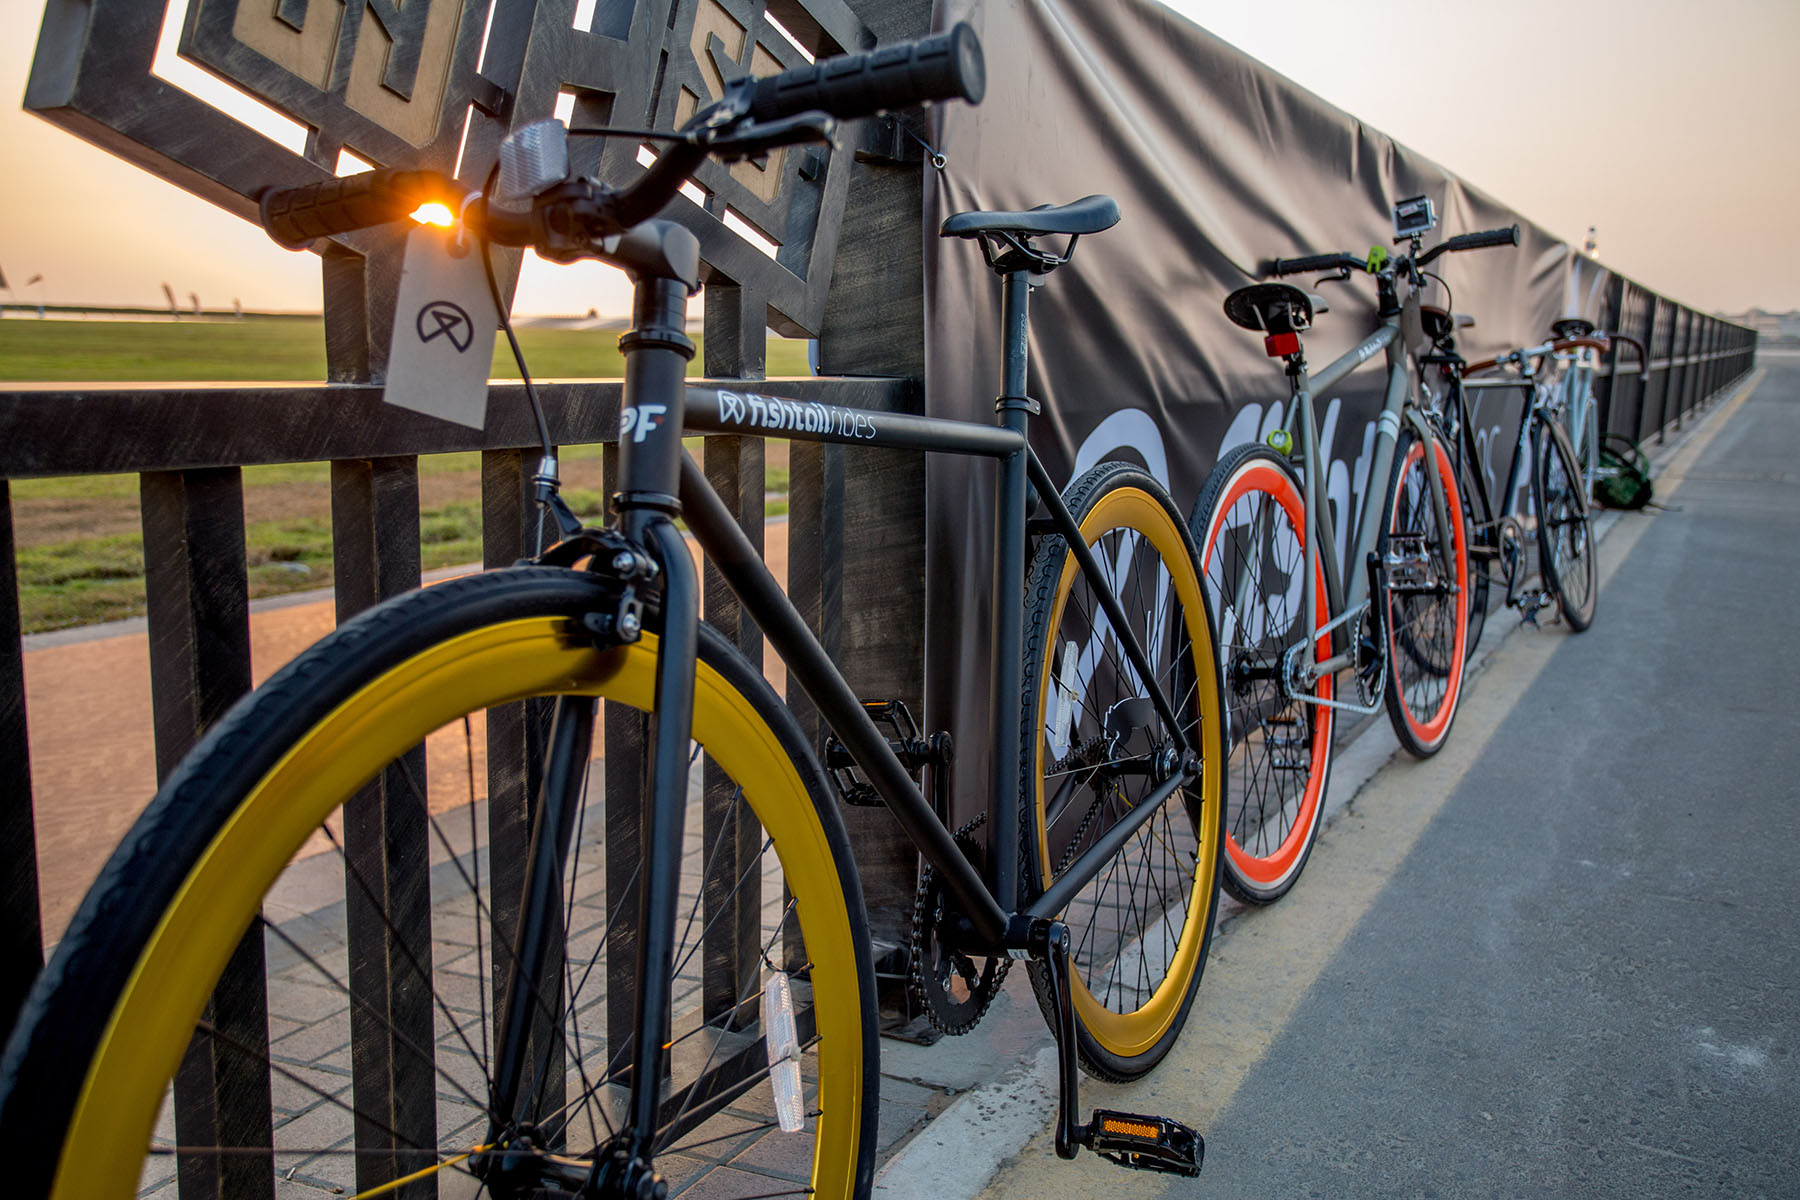 Fishtail ride bikes ready for the PUMA event by Loesje Kessels Fashion Photographer Dubai